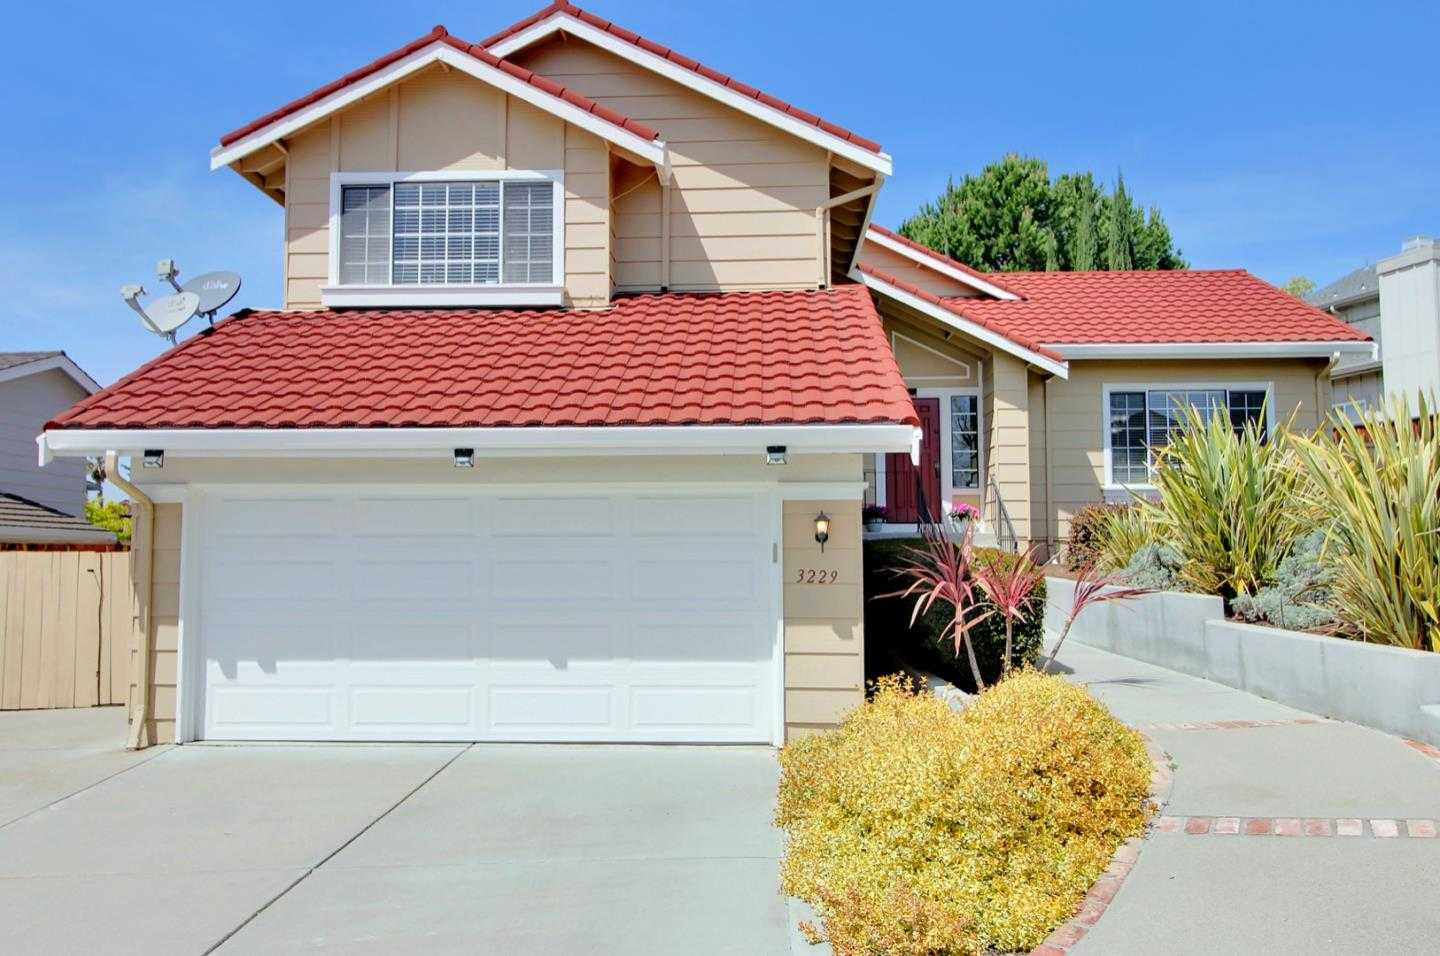 $1,569,000 - 5Br/3Ba -  for Sale in San Jose